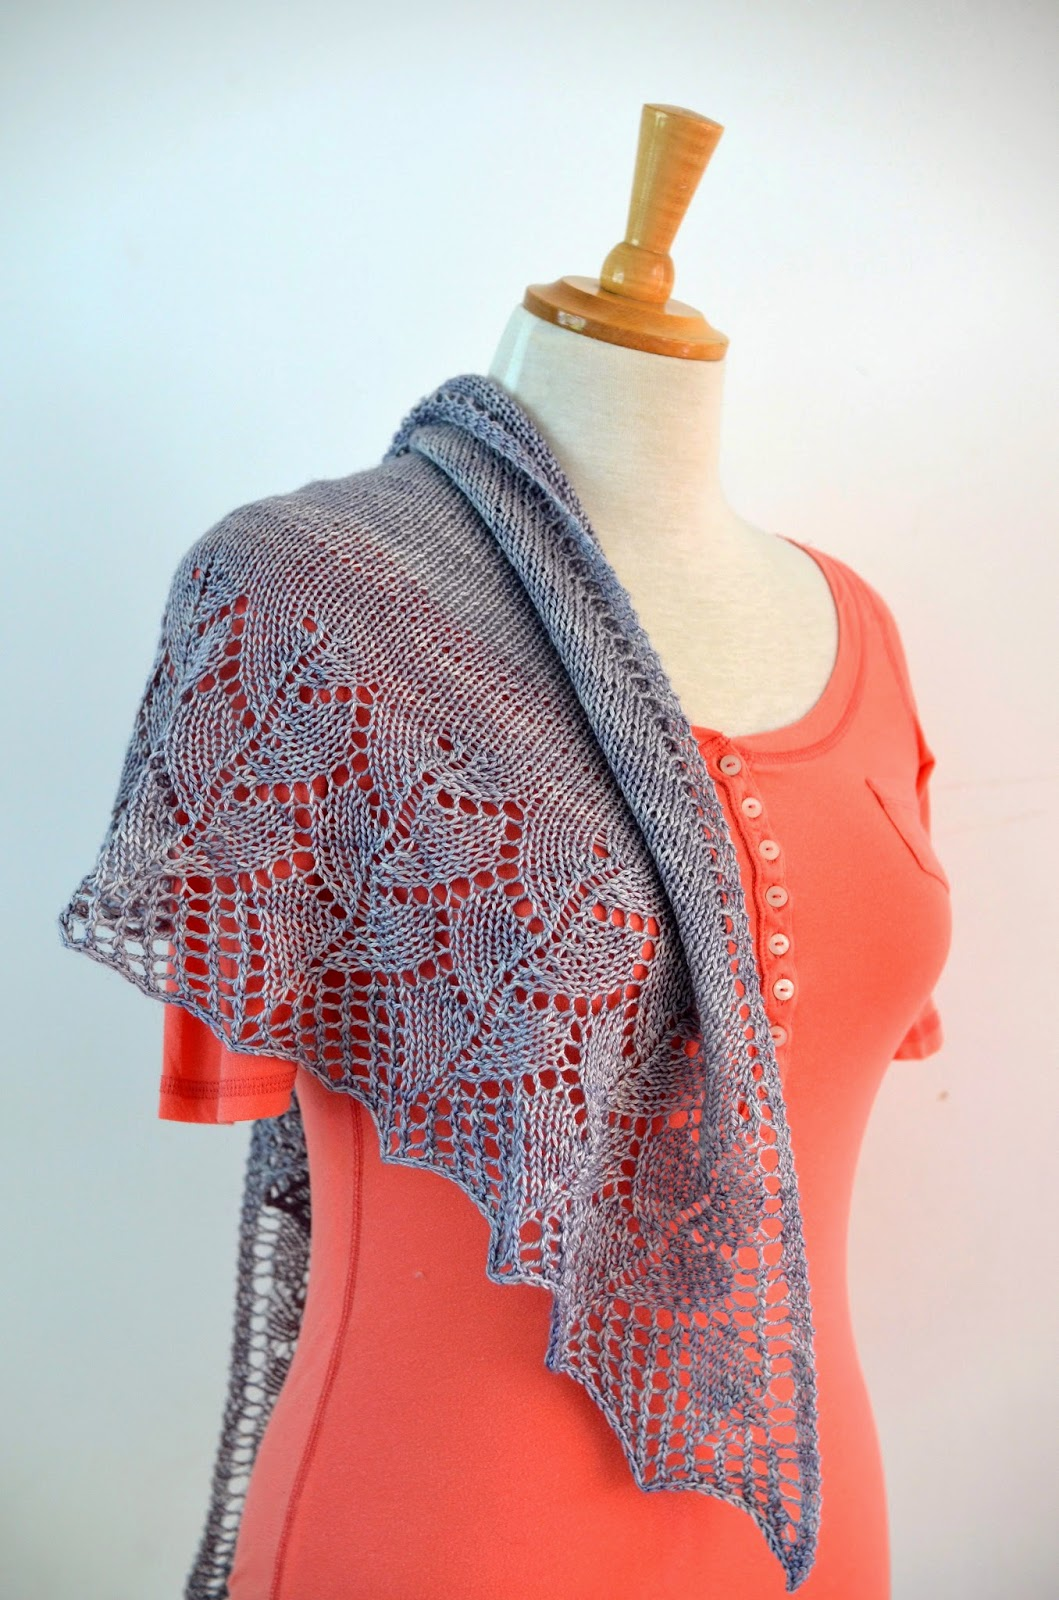 Cove Bay lace shawl pattern by Katya Frankel